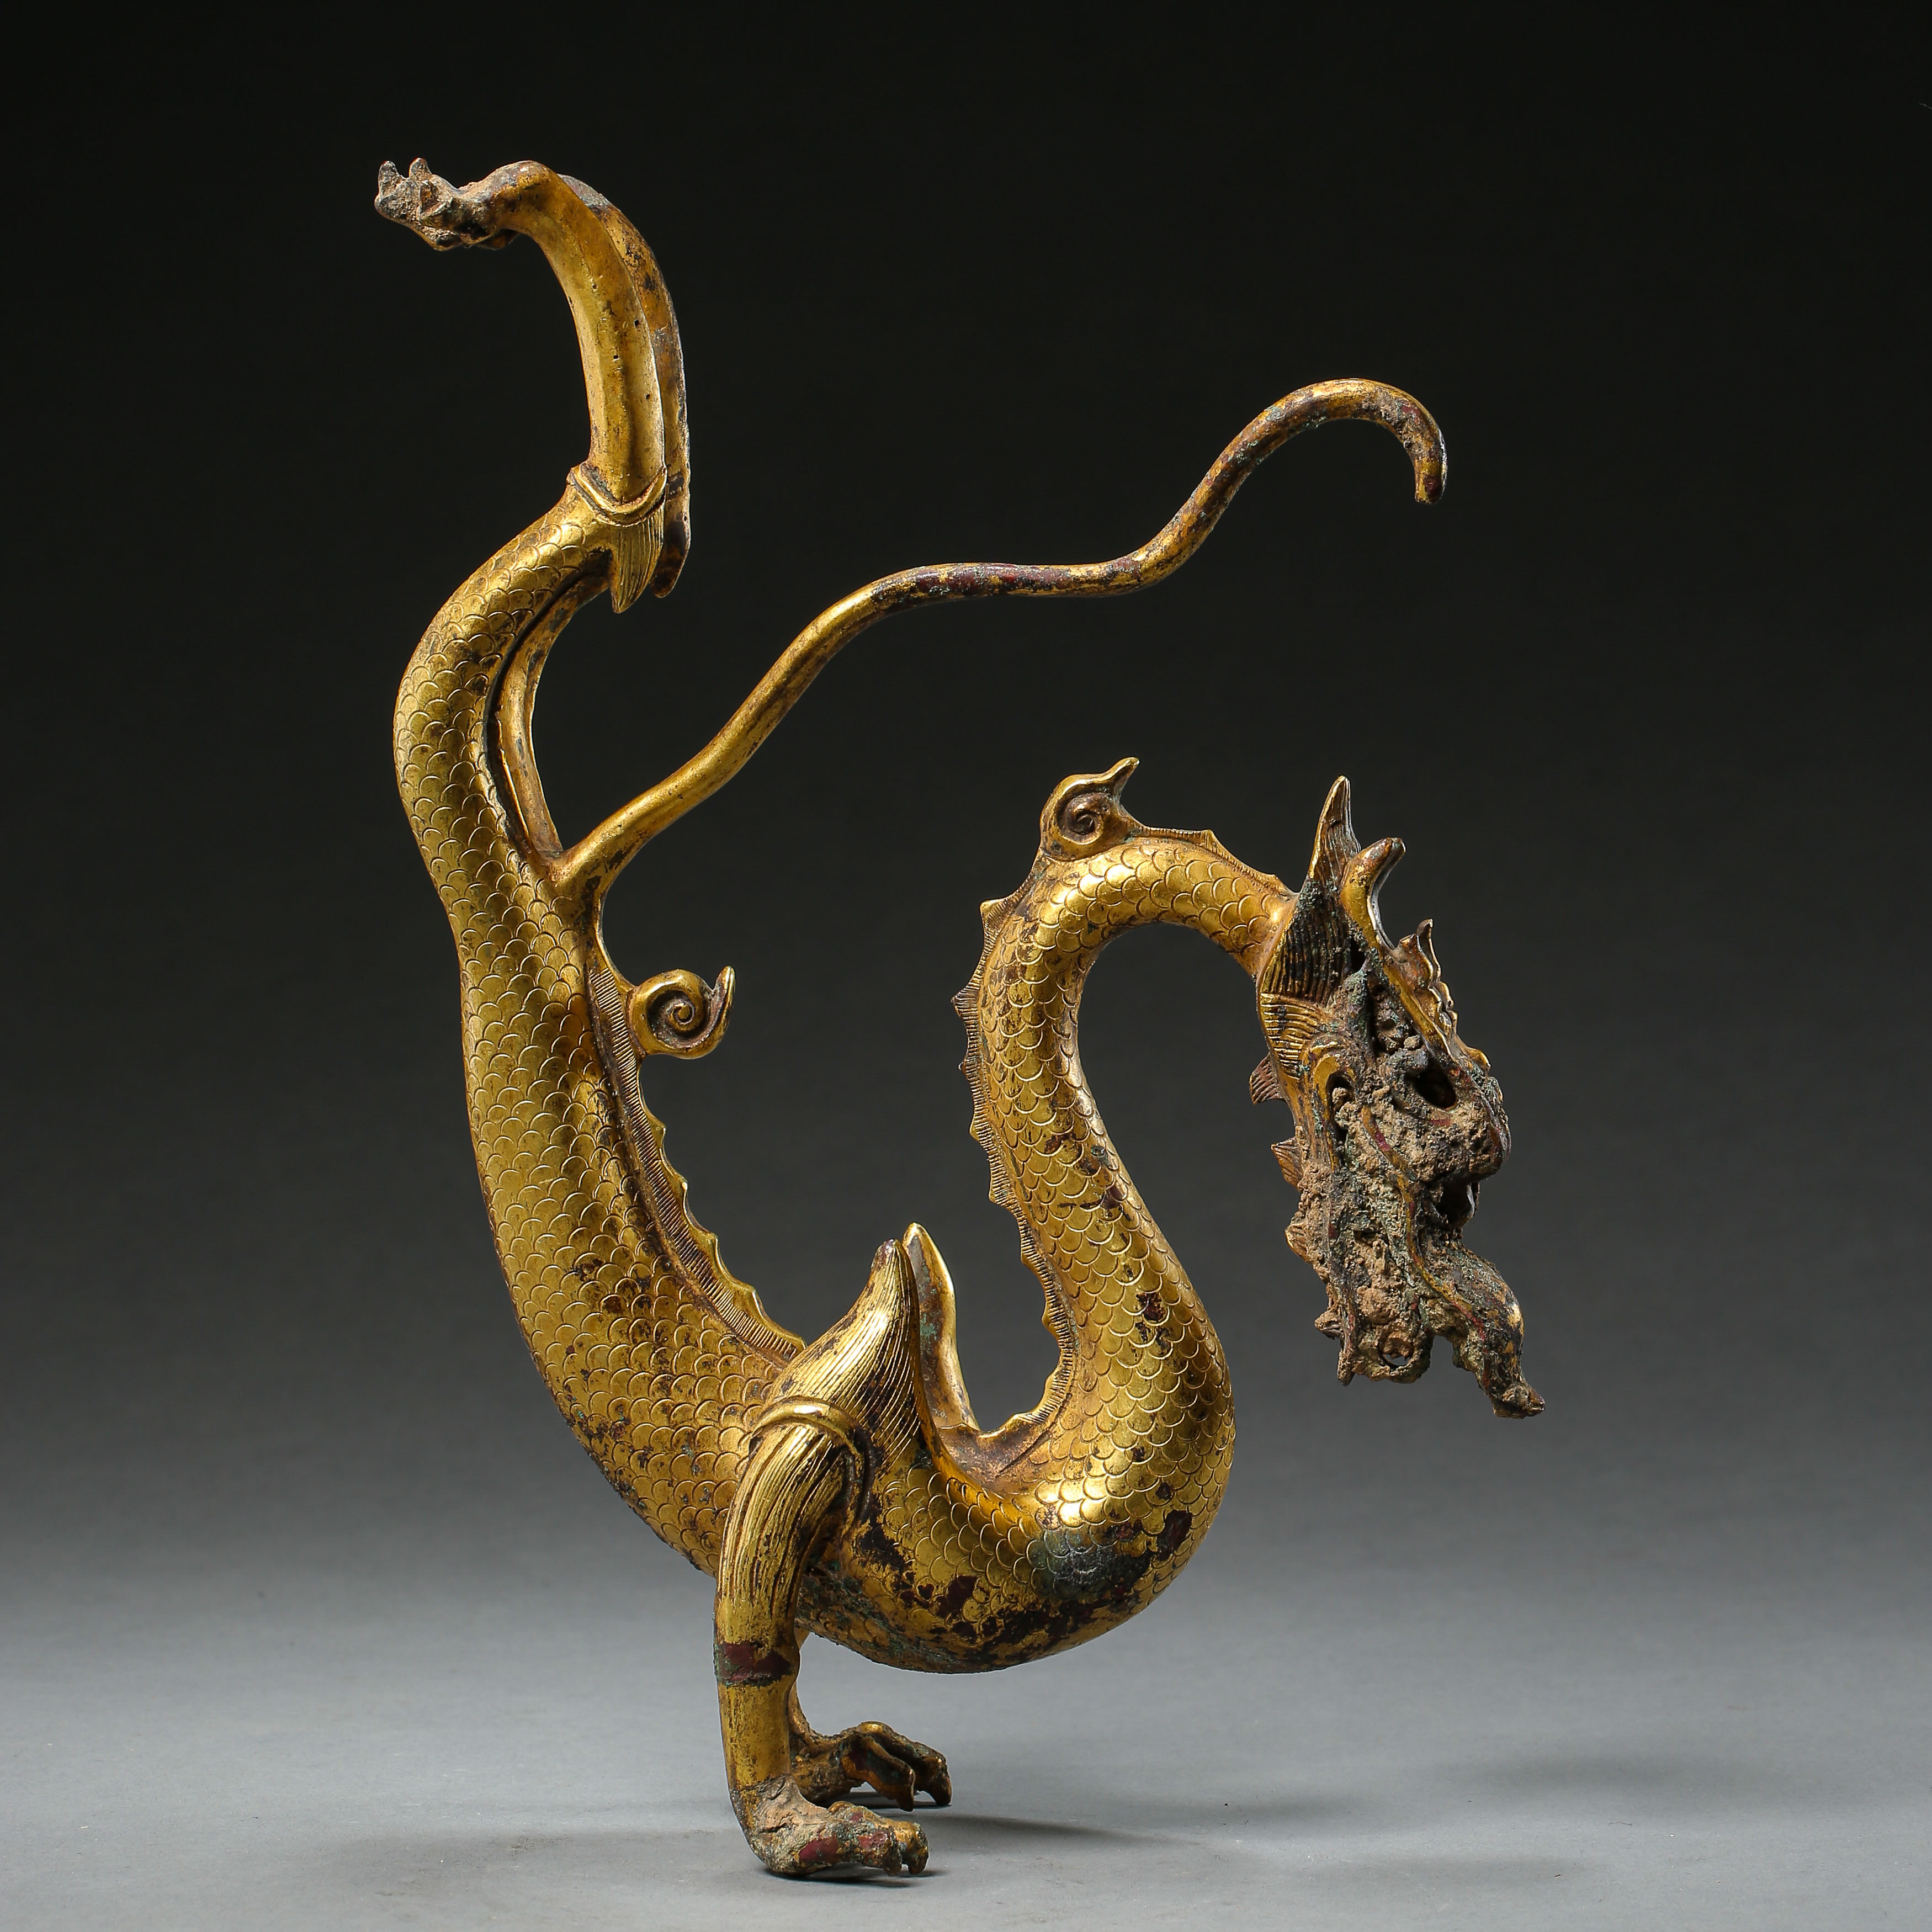 GILT BRONZE DRAGON IN TANG DYNASTY, CHINA - Image 8 of 9